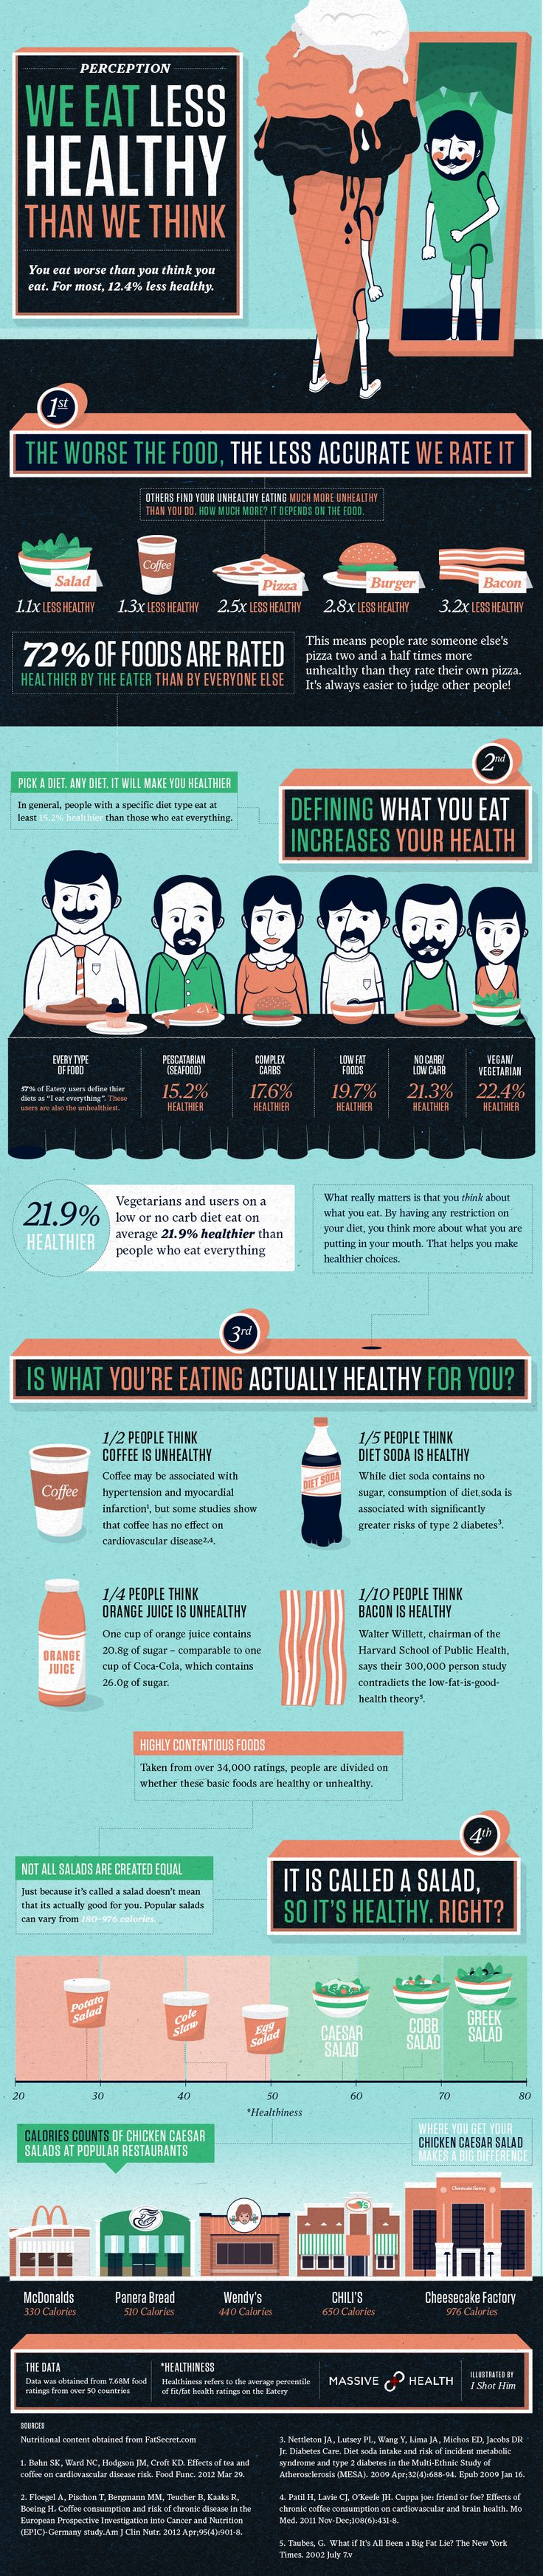 How Healthy We Think We Eat (Perception): Eating Infographic, Massive Health, Diet, Weight Loss, Healthy Eating, Recipes, Eating Healthy, Healthy Food, Infographics